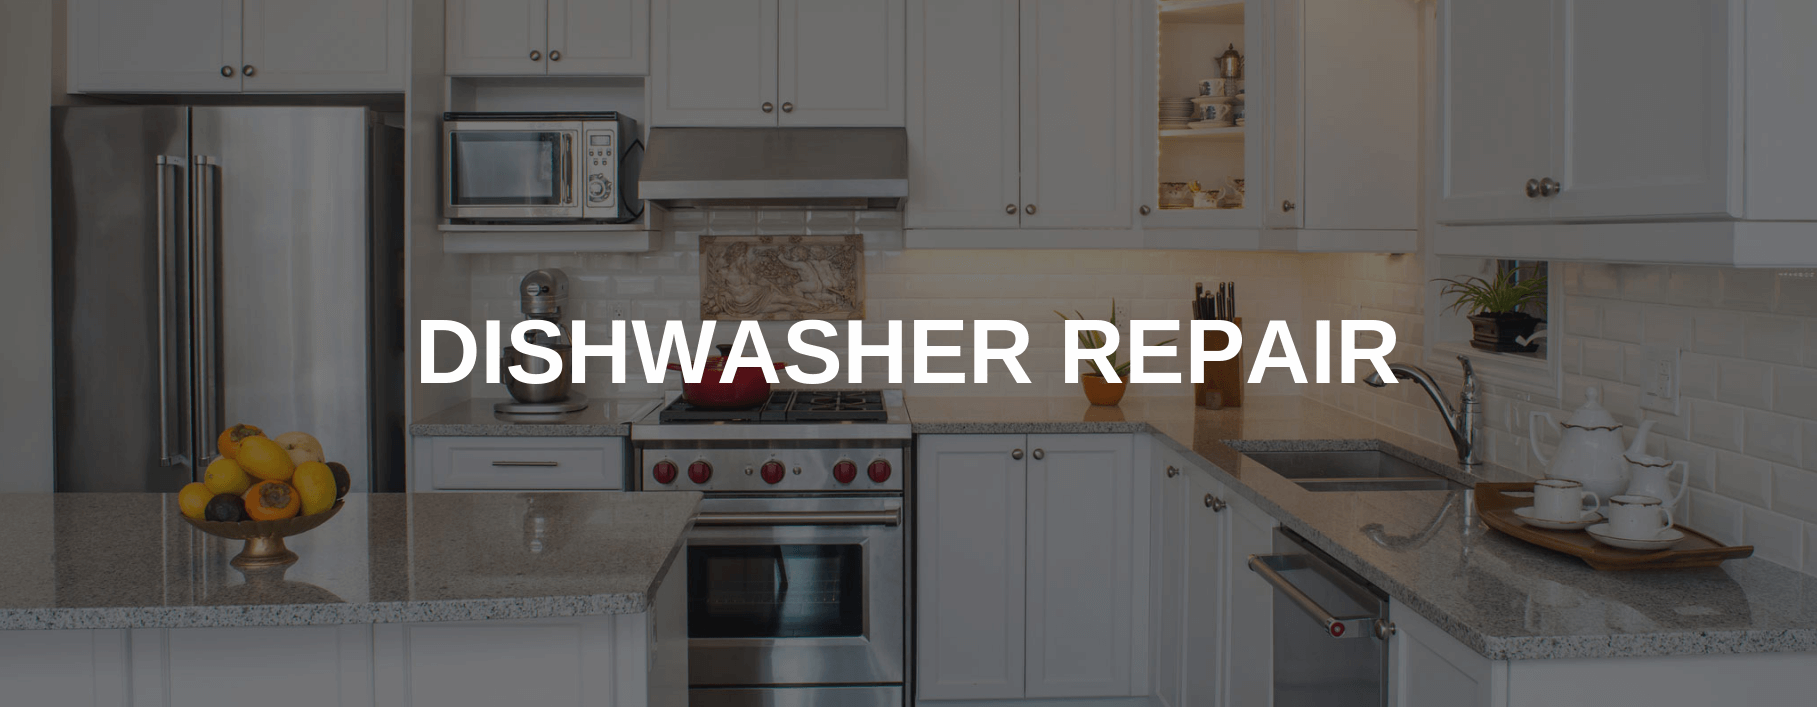 dishwasher repair la mesa